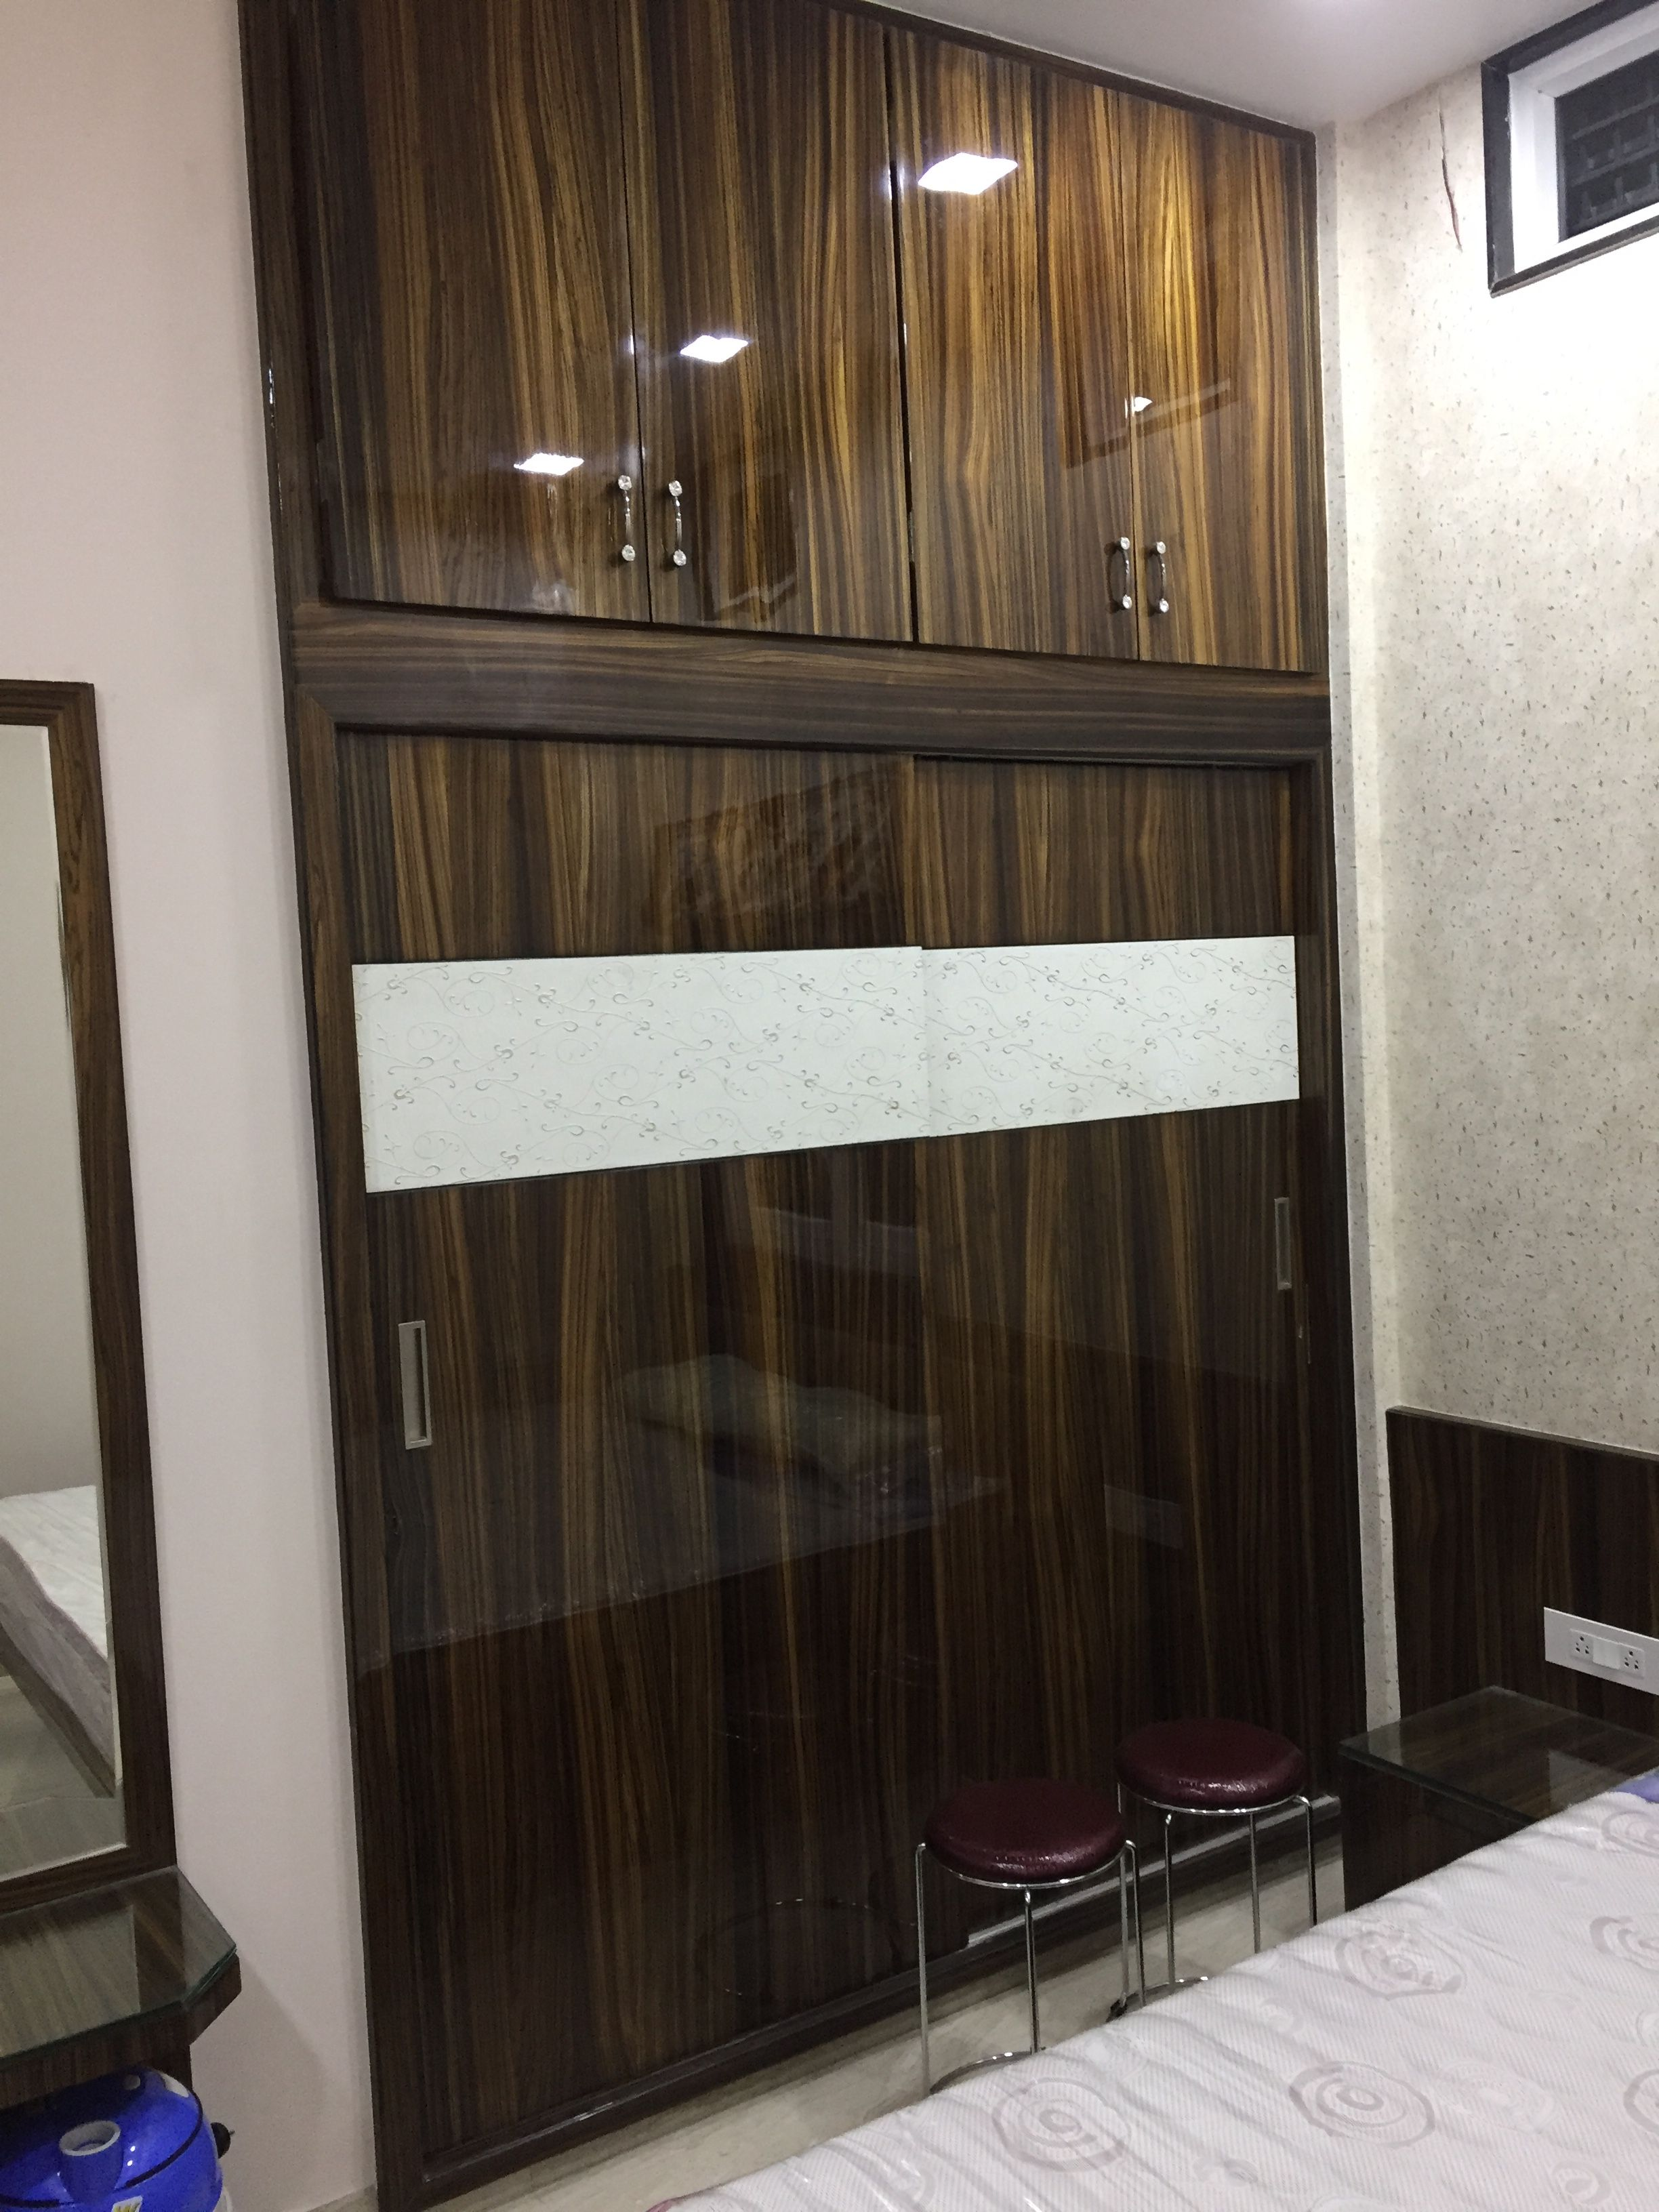 Tvunitdesign Lodhasplendora Kumarinterior: Wardrobe Design Bedroom, Wardrobe Door